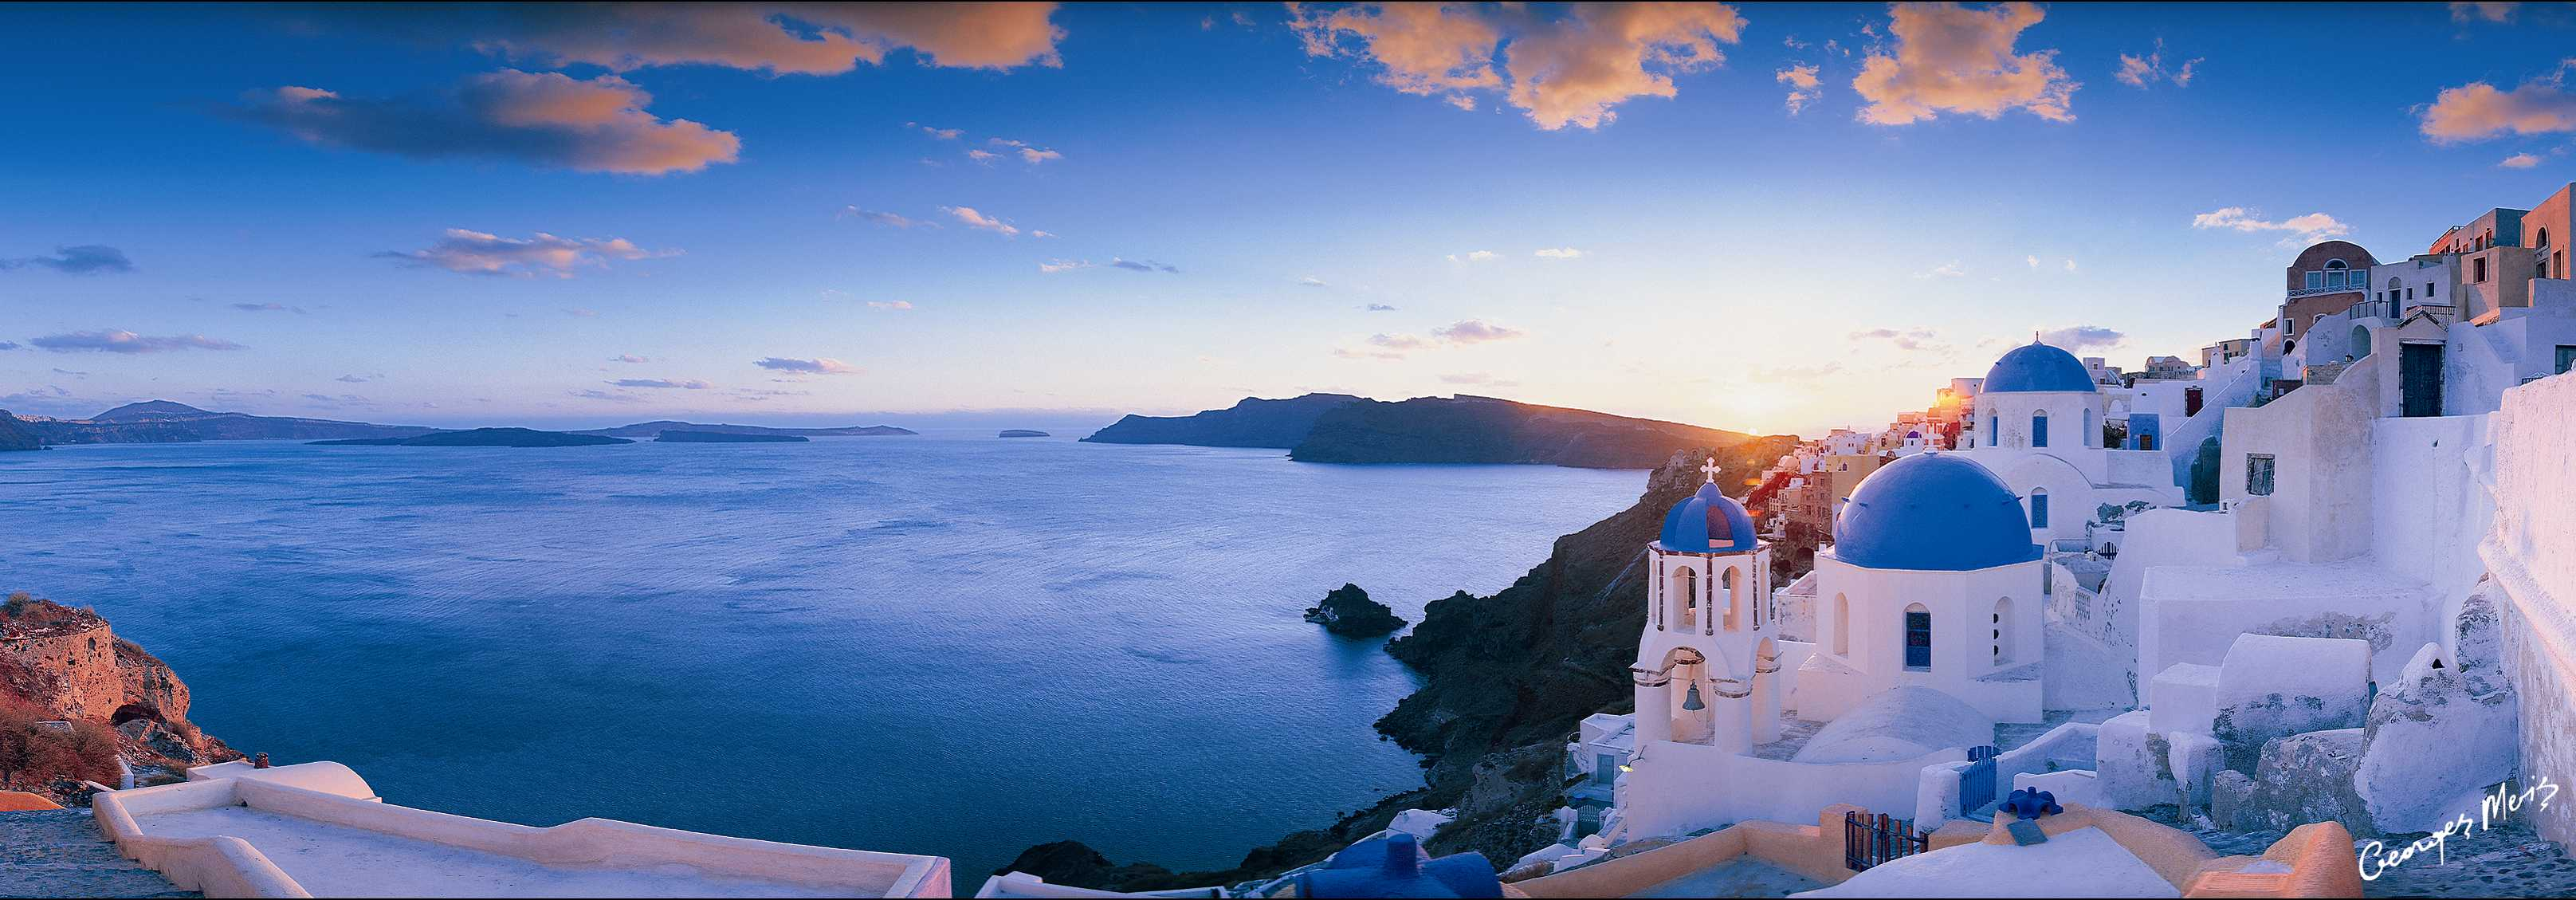 Santorini Greece Wallpapers   Top Santorini Greece 3232x1129